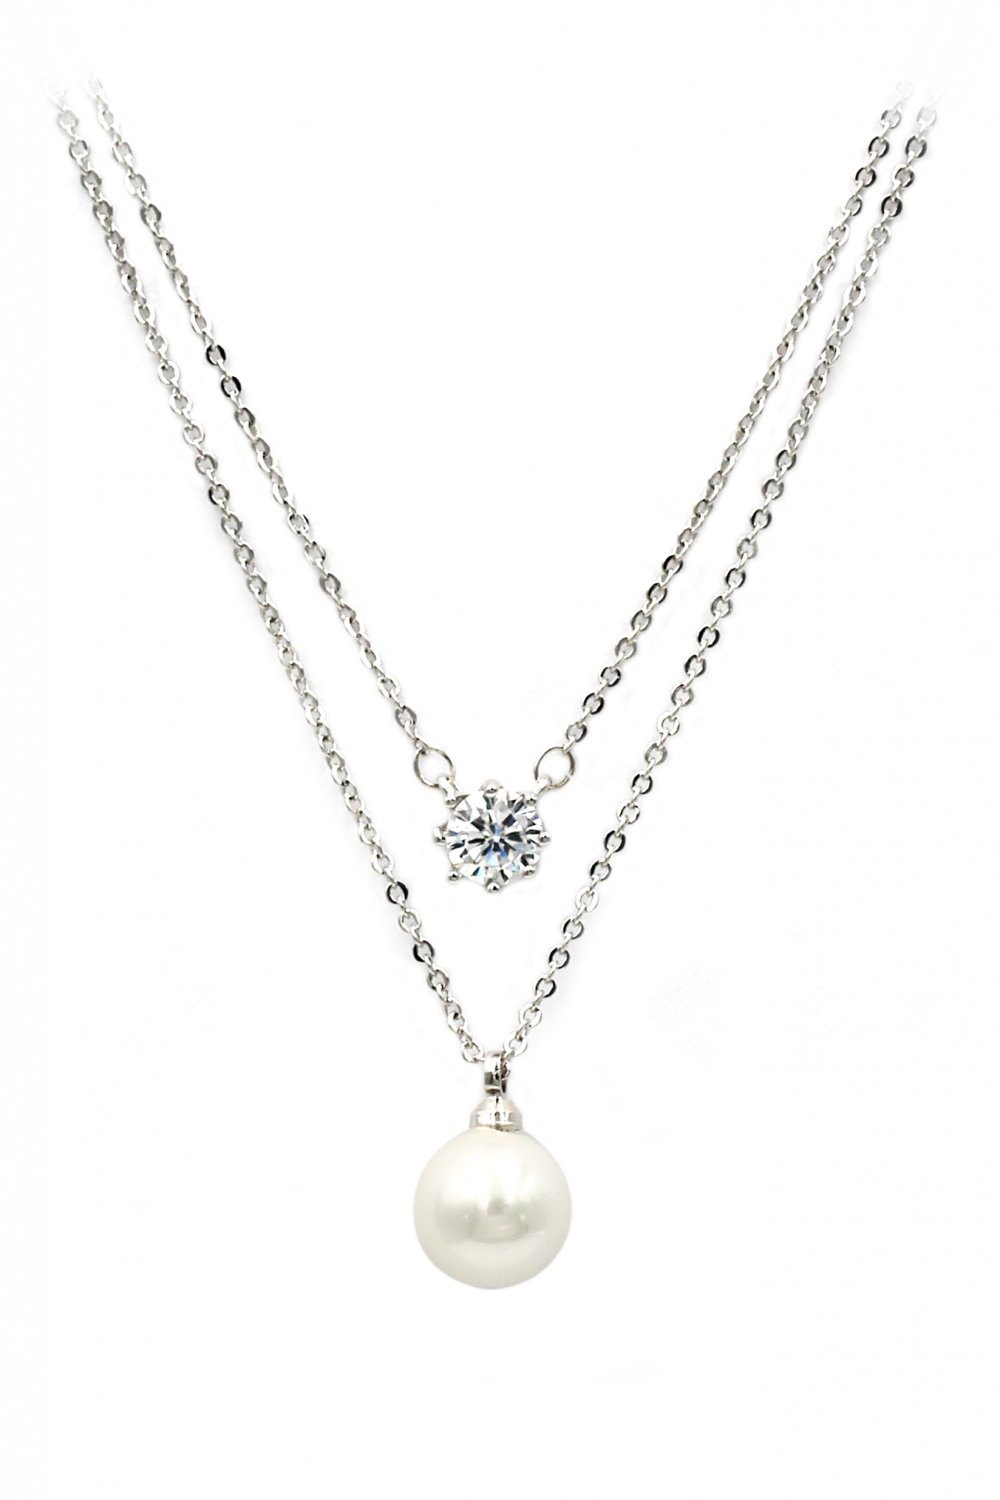 Exquisite double-chain crystal pearl silver necklace